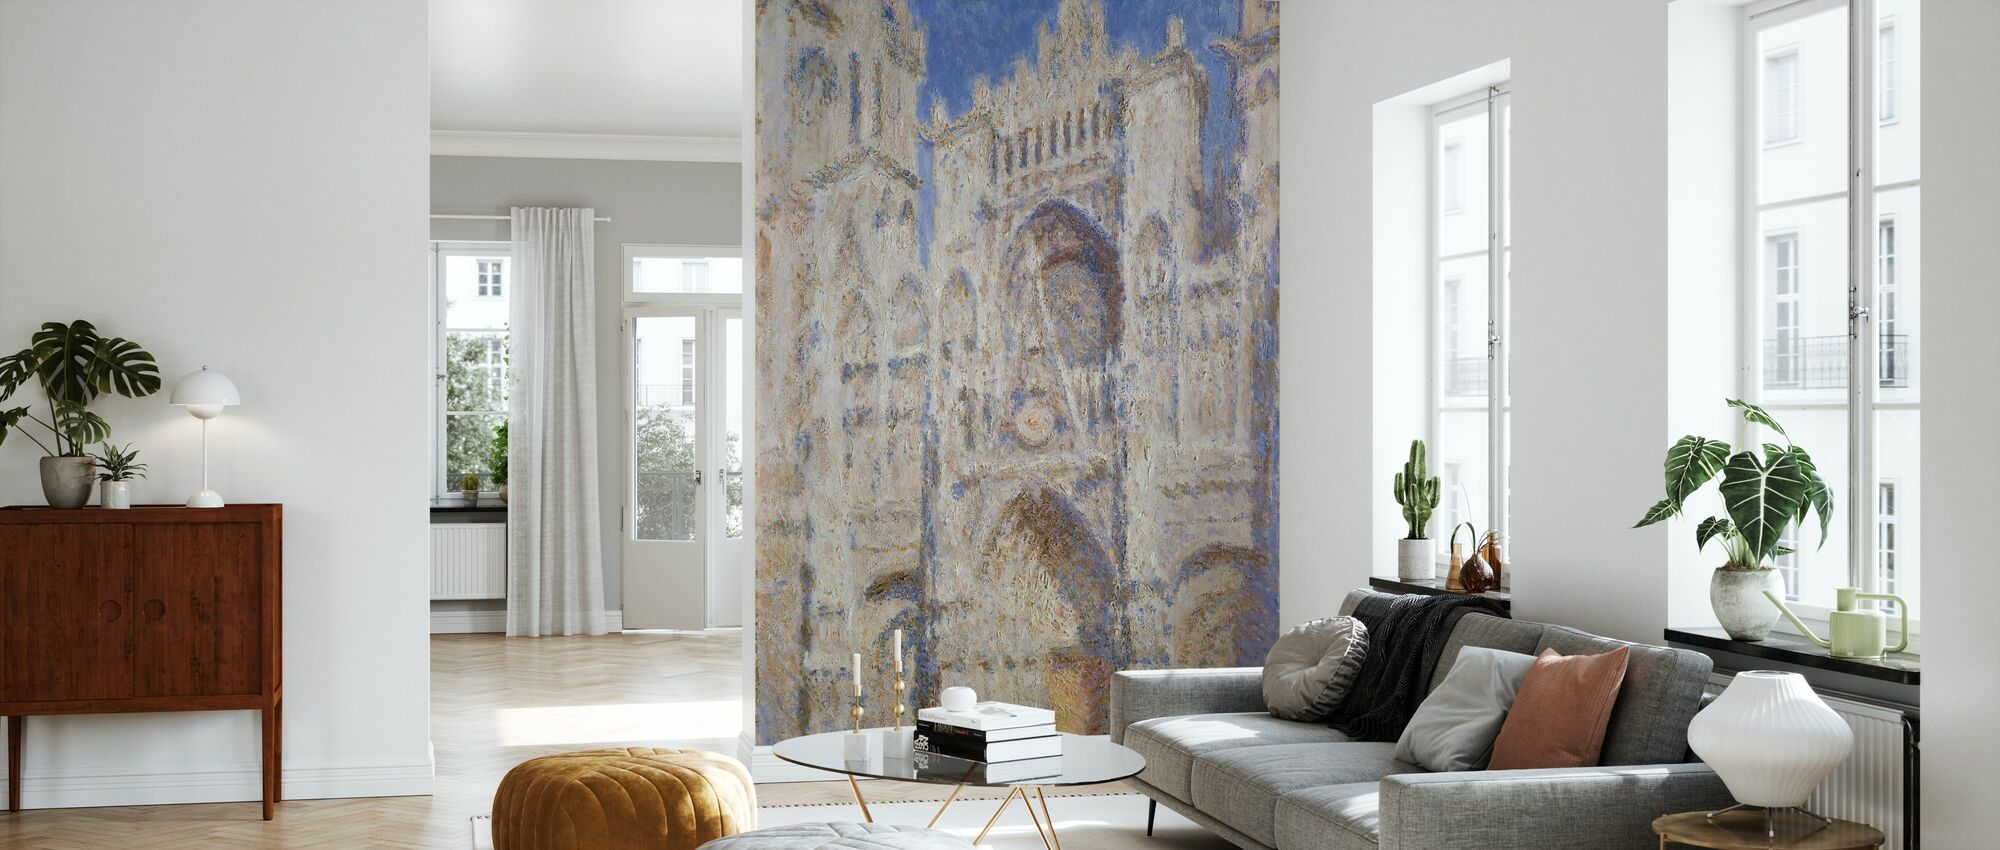 Rouen Cathedral the Portal - Claude Monet - Wallpaper - Living Room